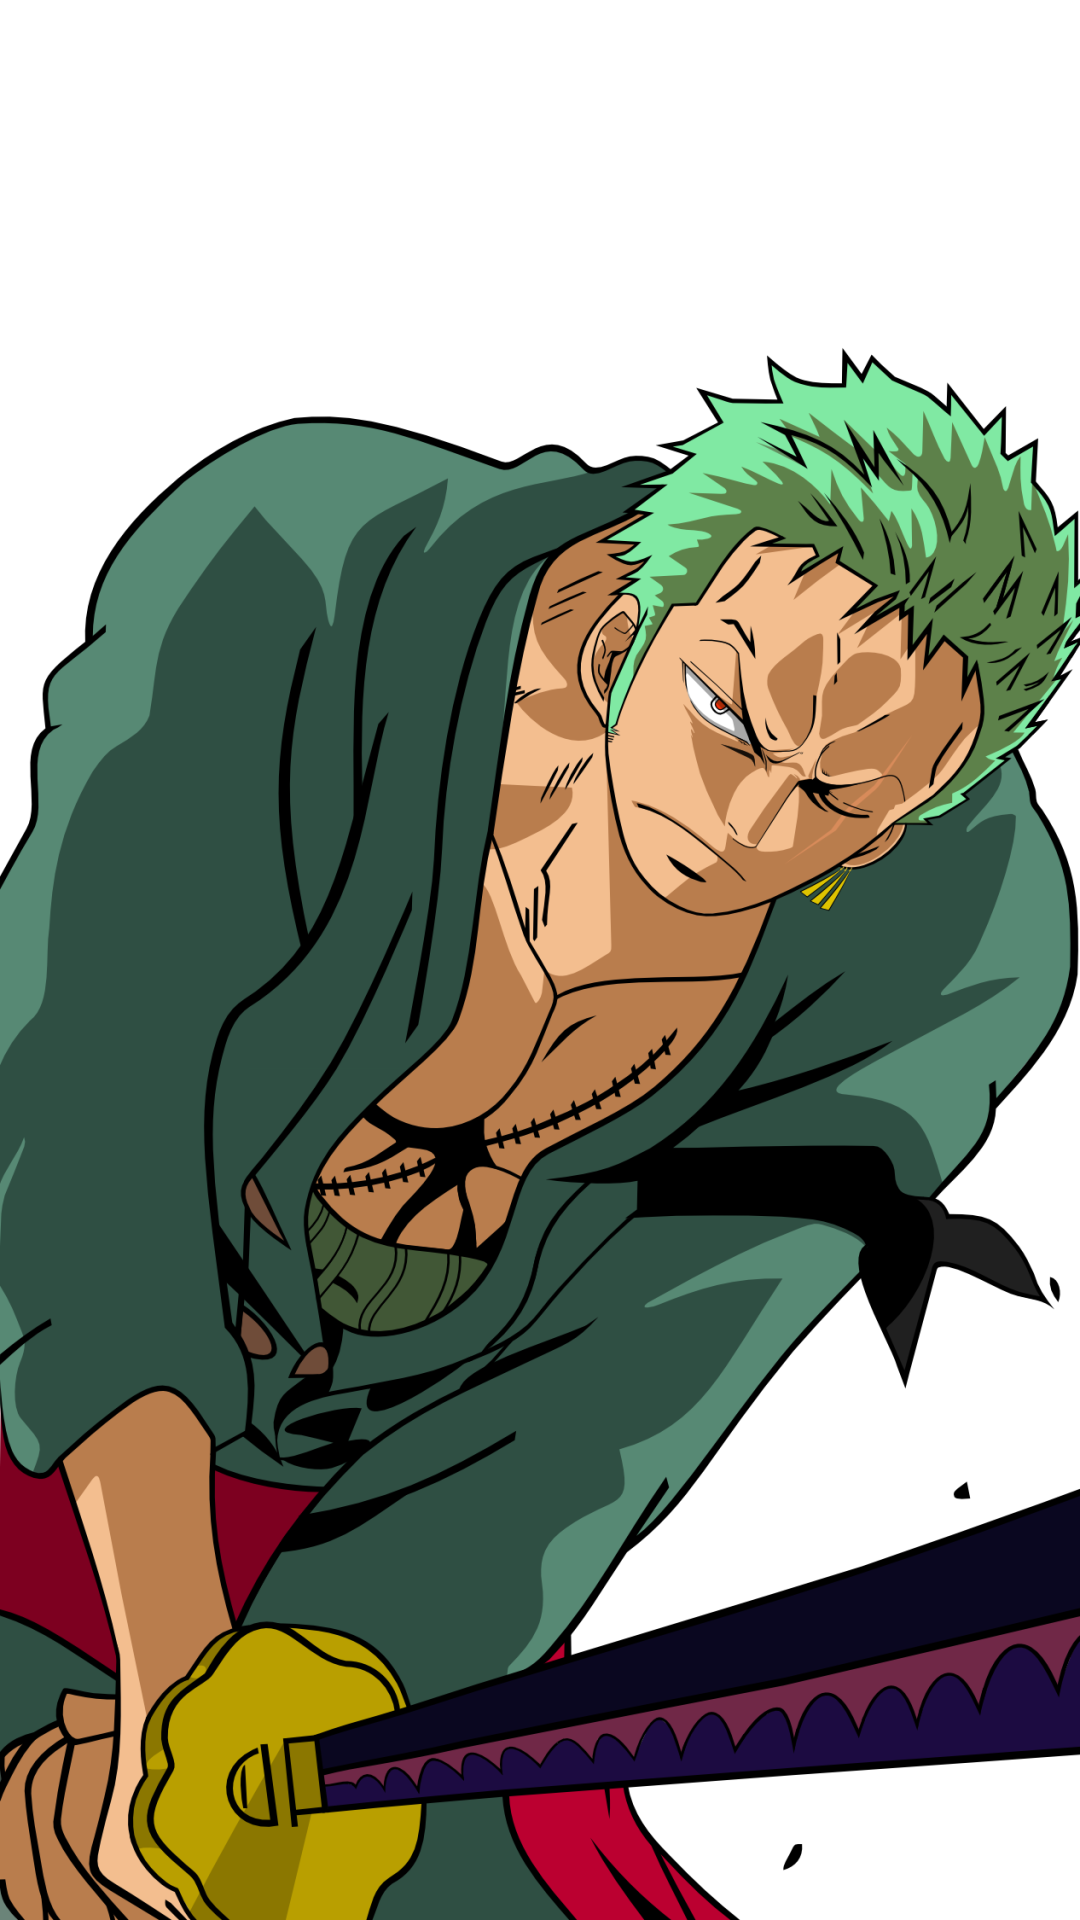 Zoro Iphone Wallpapers Top Free Zoro Iphone Backgrounds Wallpaperaccess